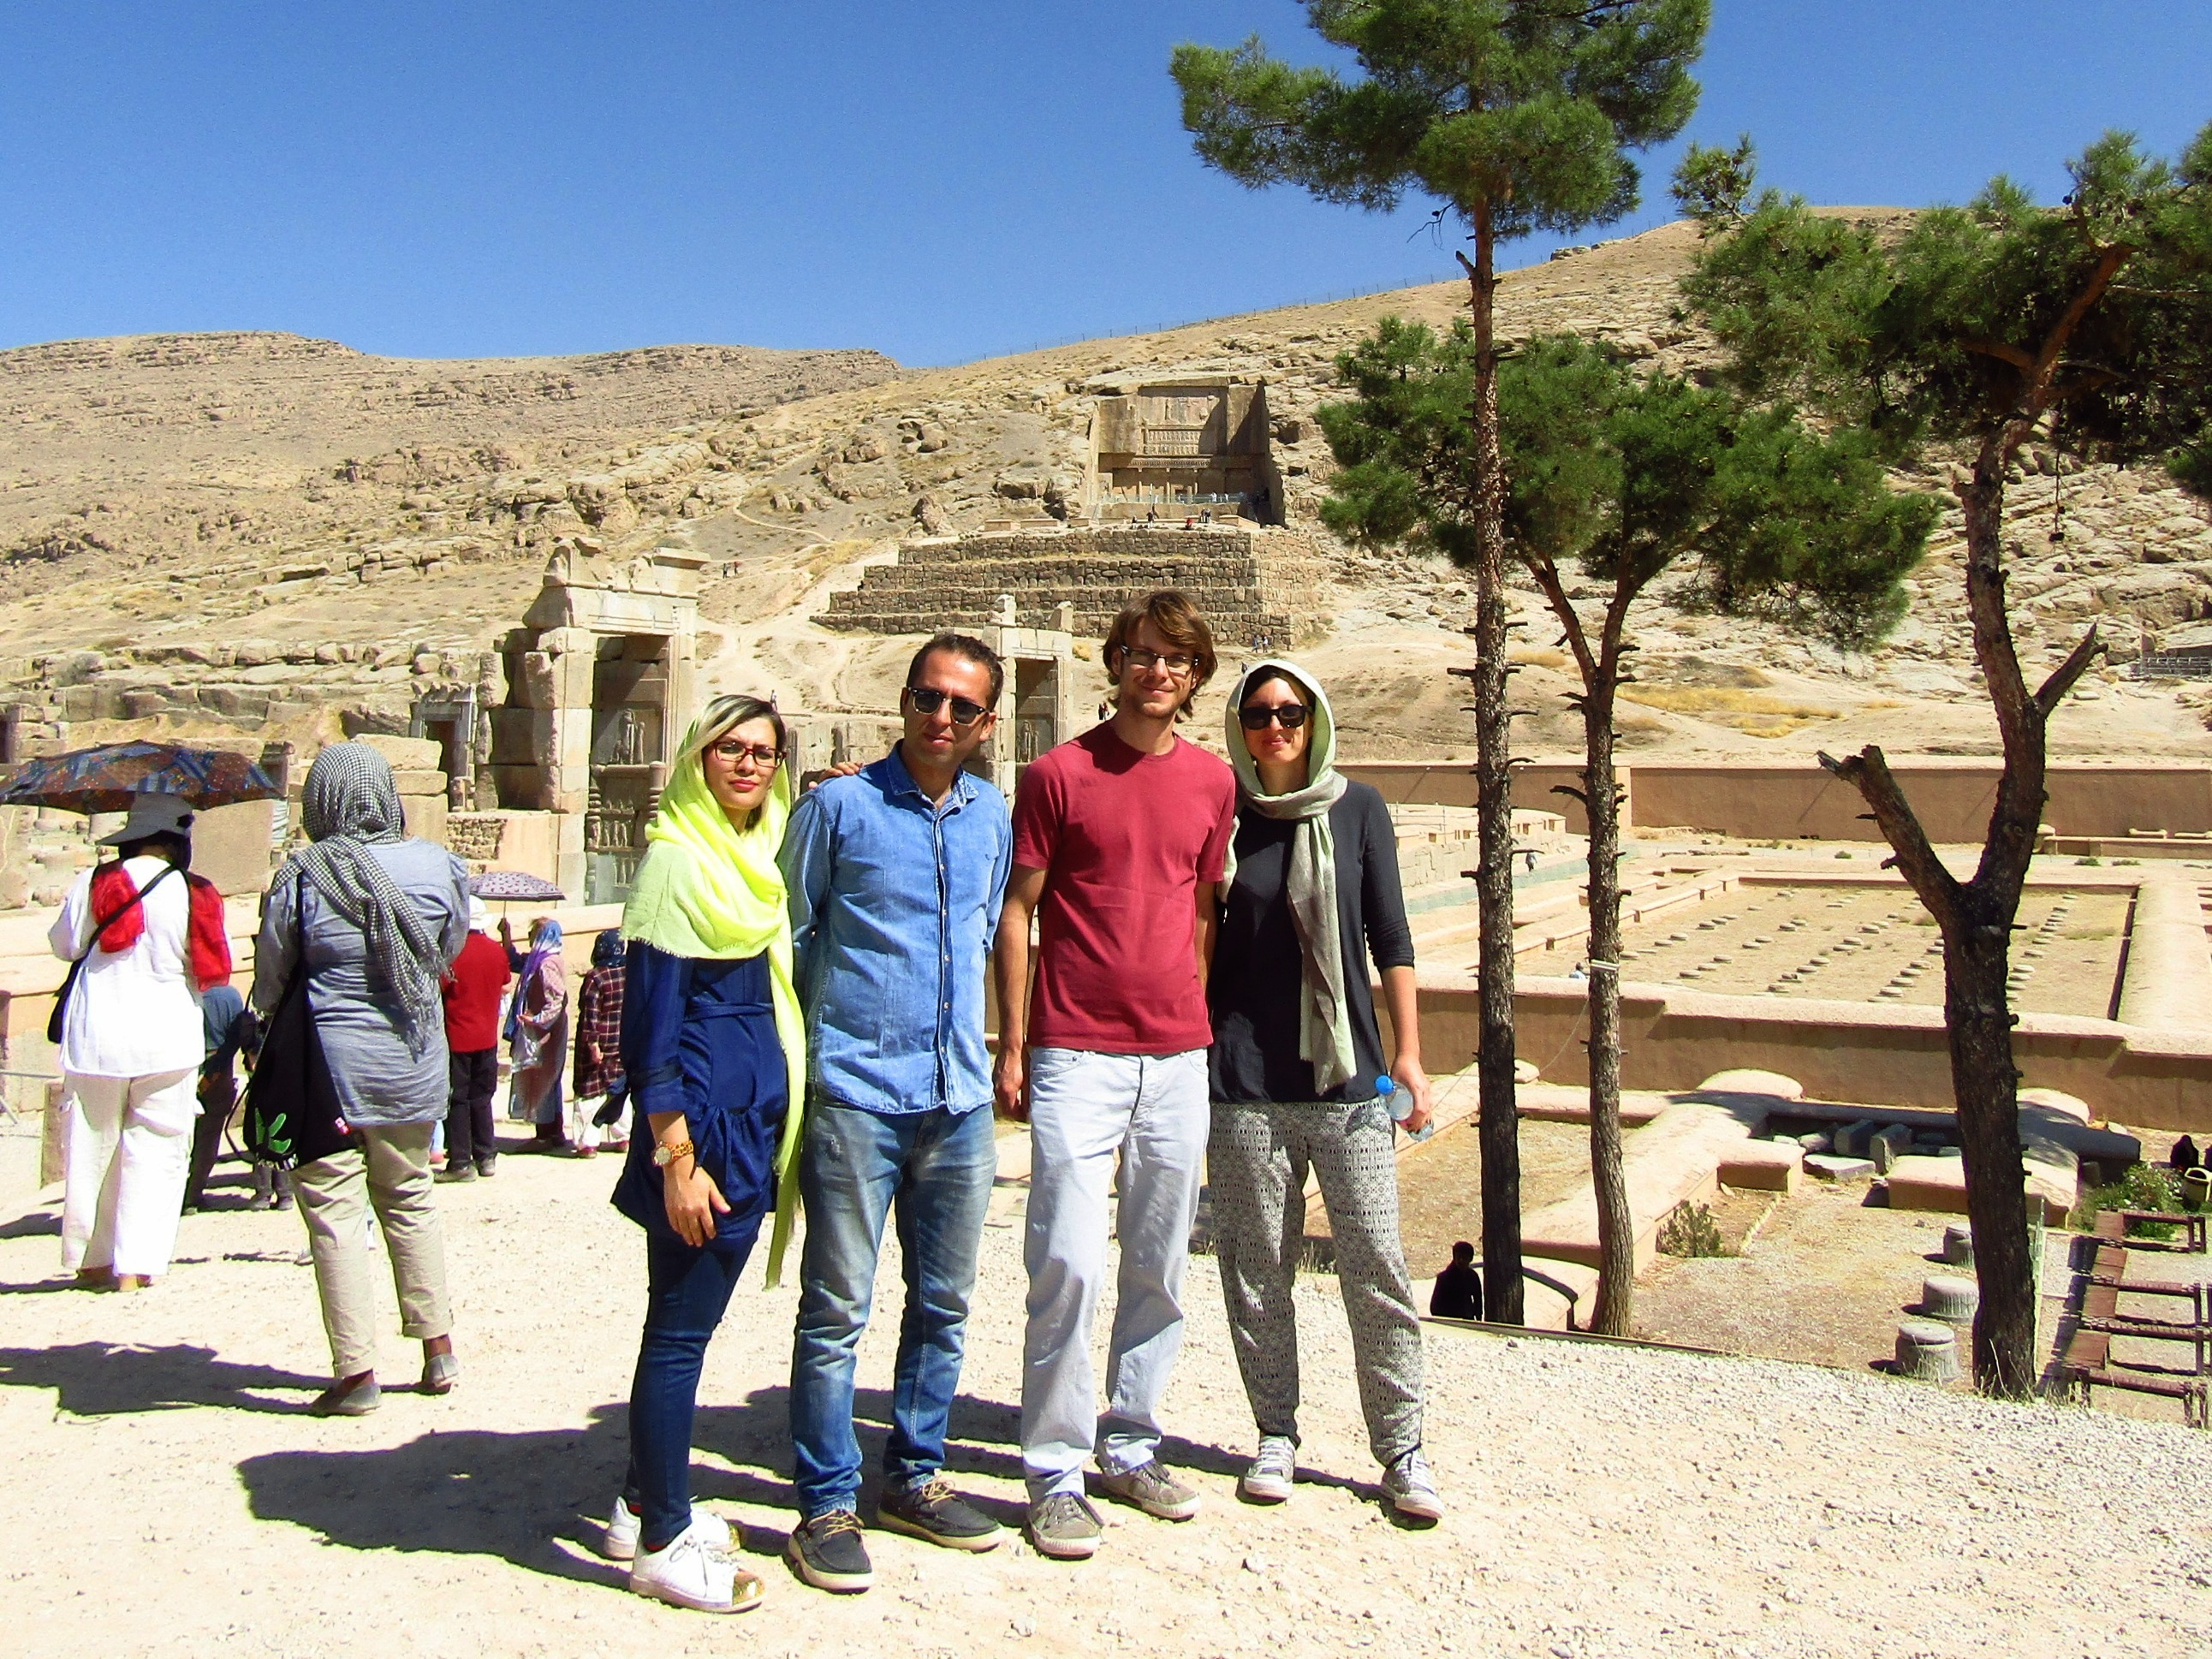 Day-tripping in Persepolis with Shiva and Mostafa